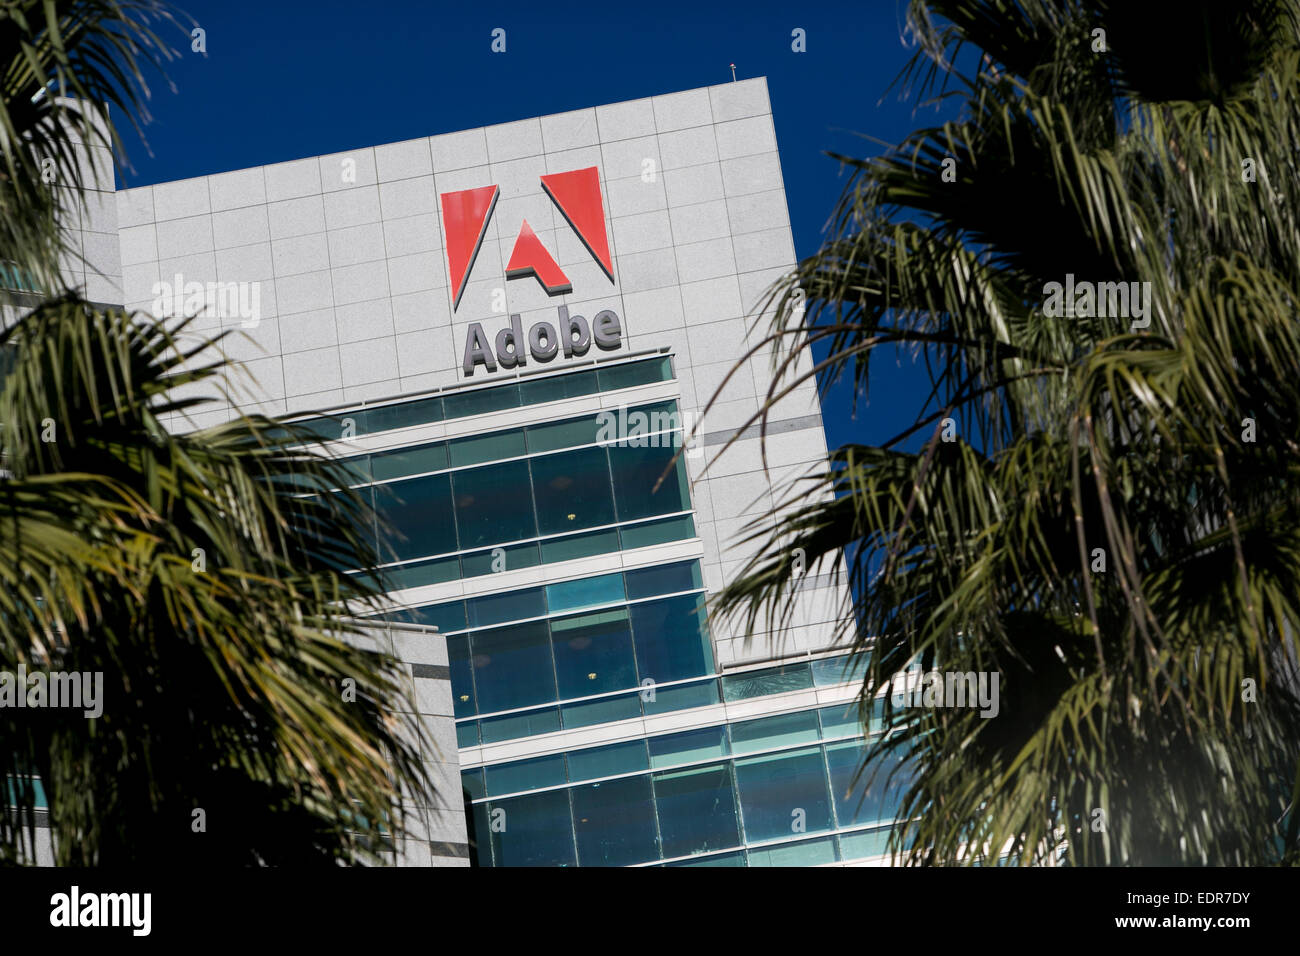 The headquarters of Adobe Systems in San Jose, California. - Stock Image